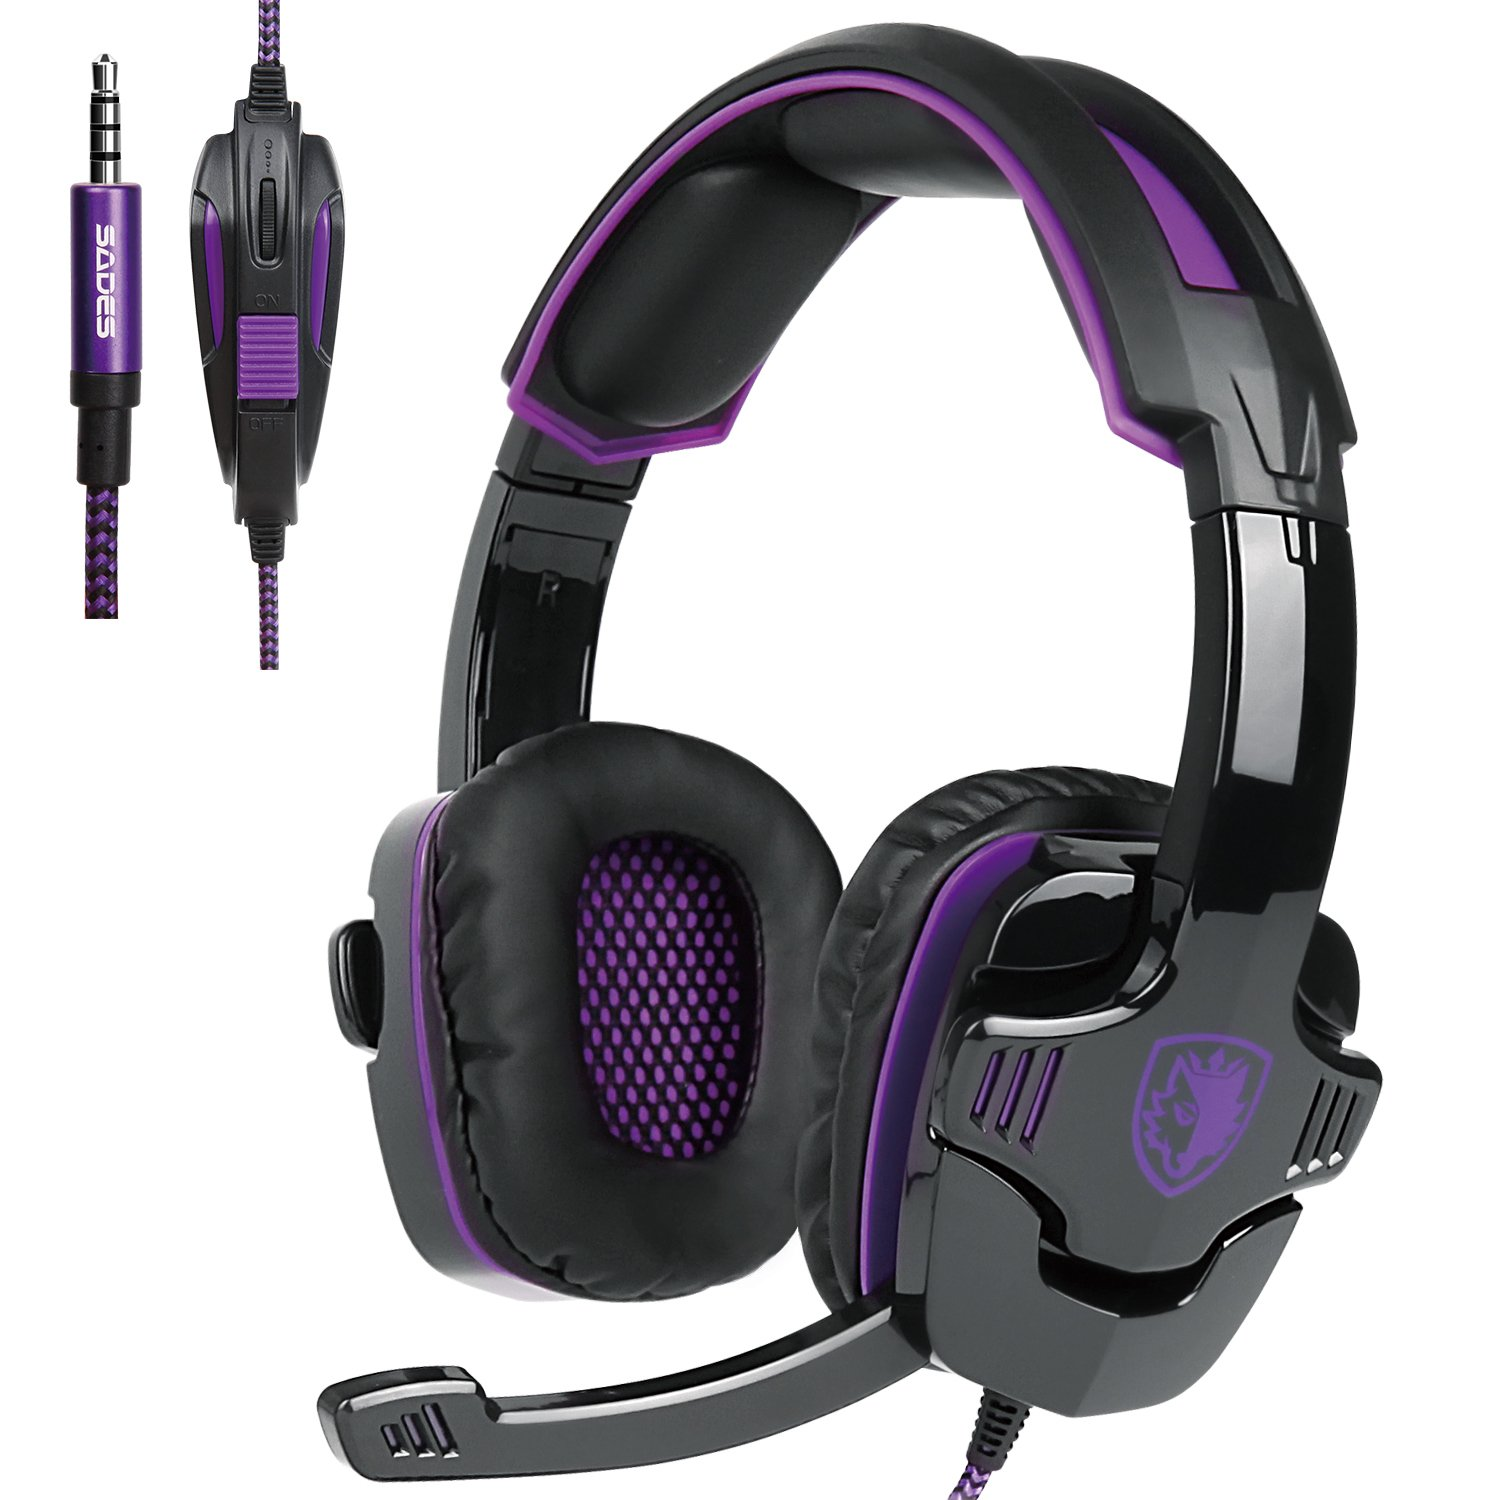 Updated Gaming Headphones,sades Sa930 Wired 3.5mm Ste (rar6)